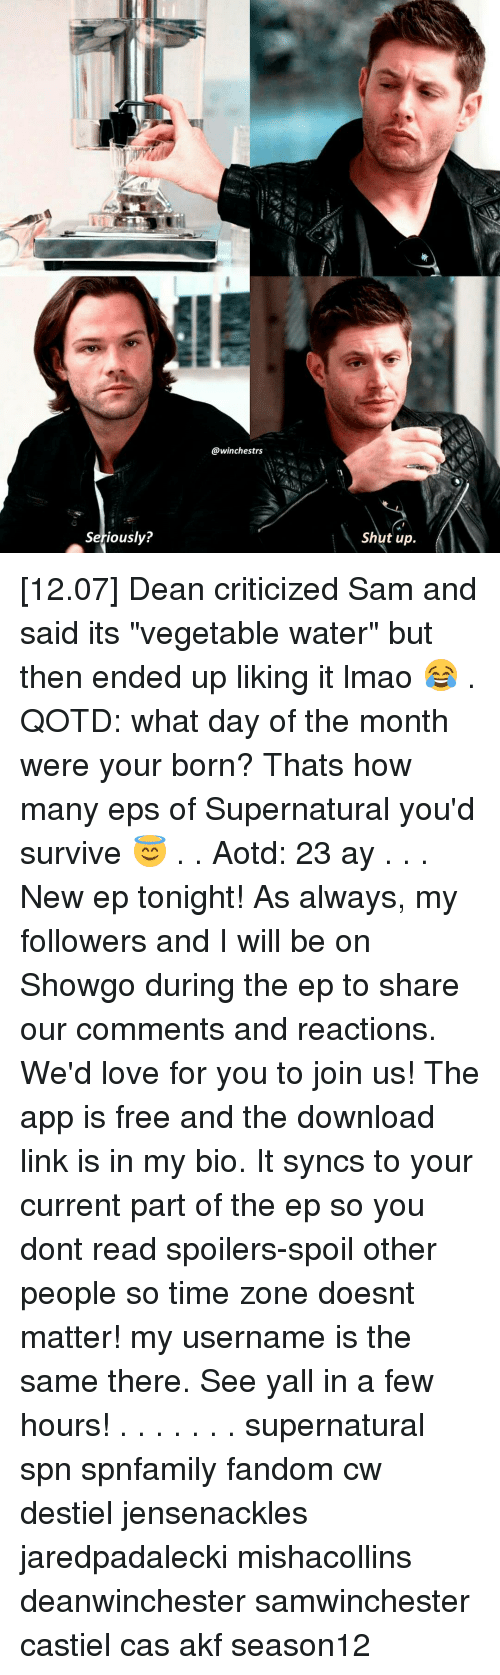 "Lmao, Memes, and Shut Up: Seriously?  @winchestrs  Shut up [12.07] Dean criticized Sam and said its ""vegetable water"" but then ended up liking it lmao 😂 . QOTD: what day of the month were your born? Thats how many eps of Supernatural you'd survive 😇 . . Aotd: 23 ay . . . New ep tonight! As always, my followers and I will be on Showgo during the ep to share our comments and reactions. We'd love for you to join us! The app is free and the download link is in my bio. It syncs to your current part of the ep so you dont read spoilers-spoil other people so time zone doesnt matter!♡ my username is the same there. See yall in a few hours! . . . . . . . supernatural spn spnfamily fandom cw destiel jensenackles jaredpadalecki mishacollins deanwinchester samwinchester castiel cas akf season12"